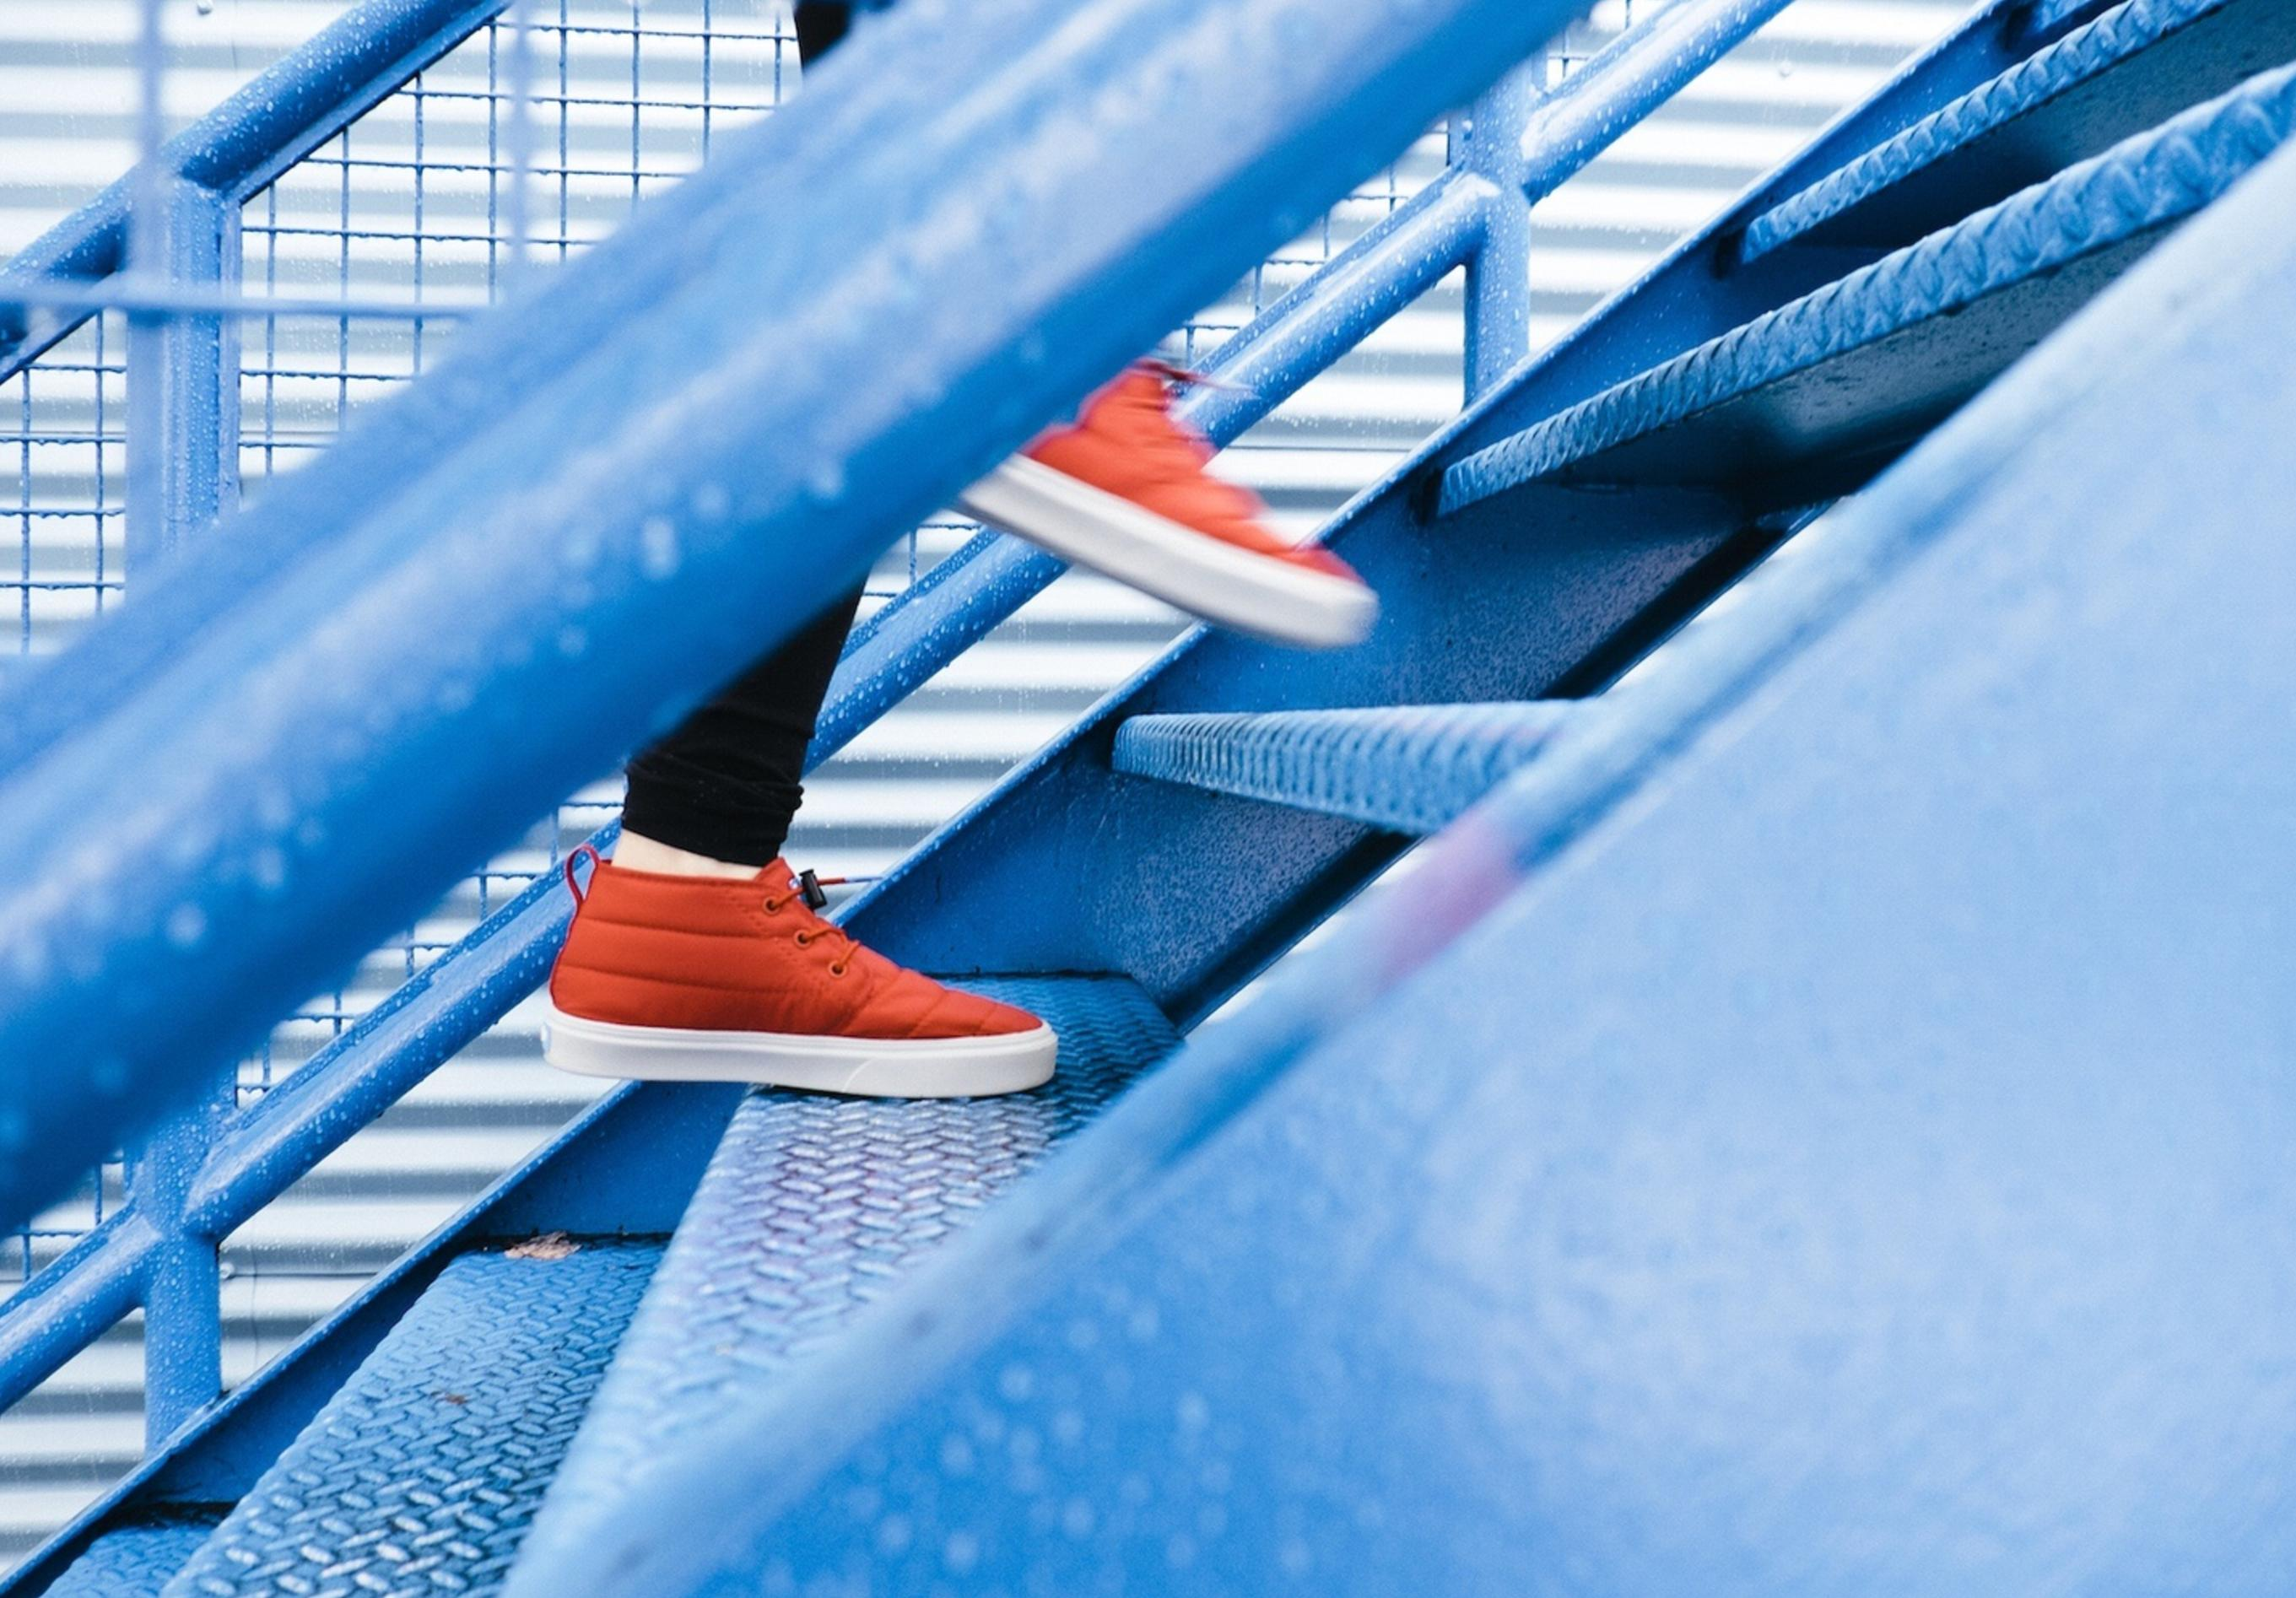 Be A Stair Master: Travel Fit Segment 2